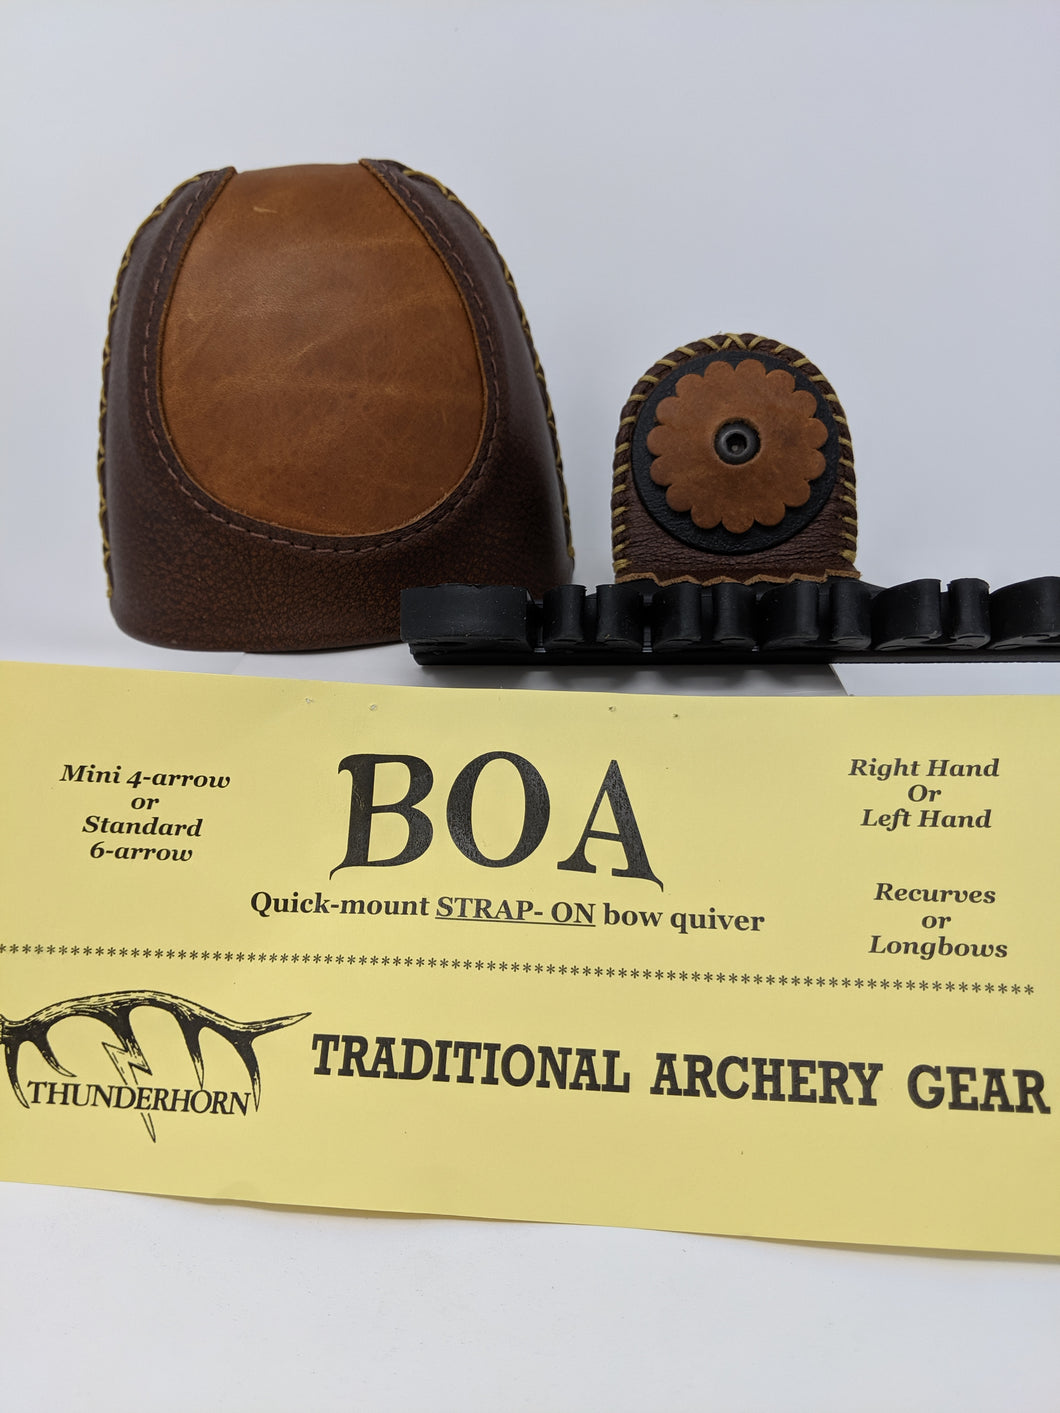 Thunderhorn Contrasting Leather Strap On Bow Quiver CL8